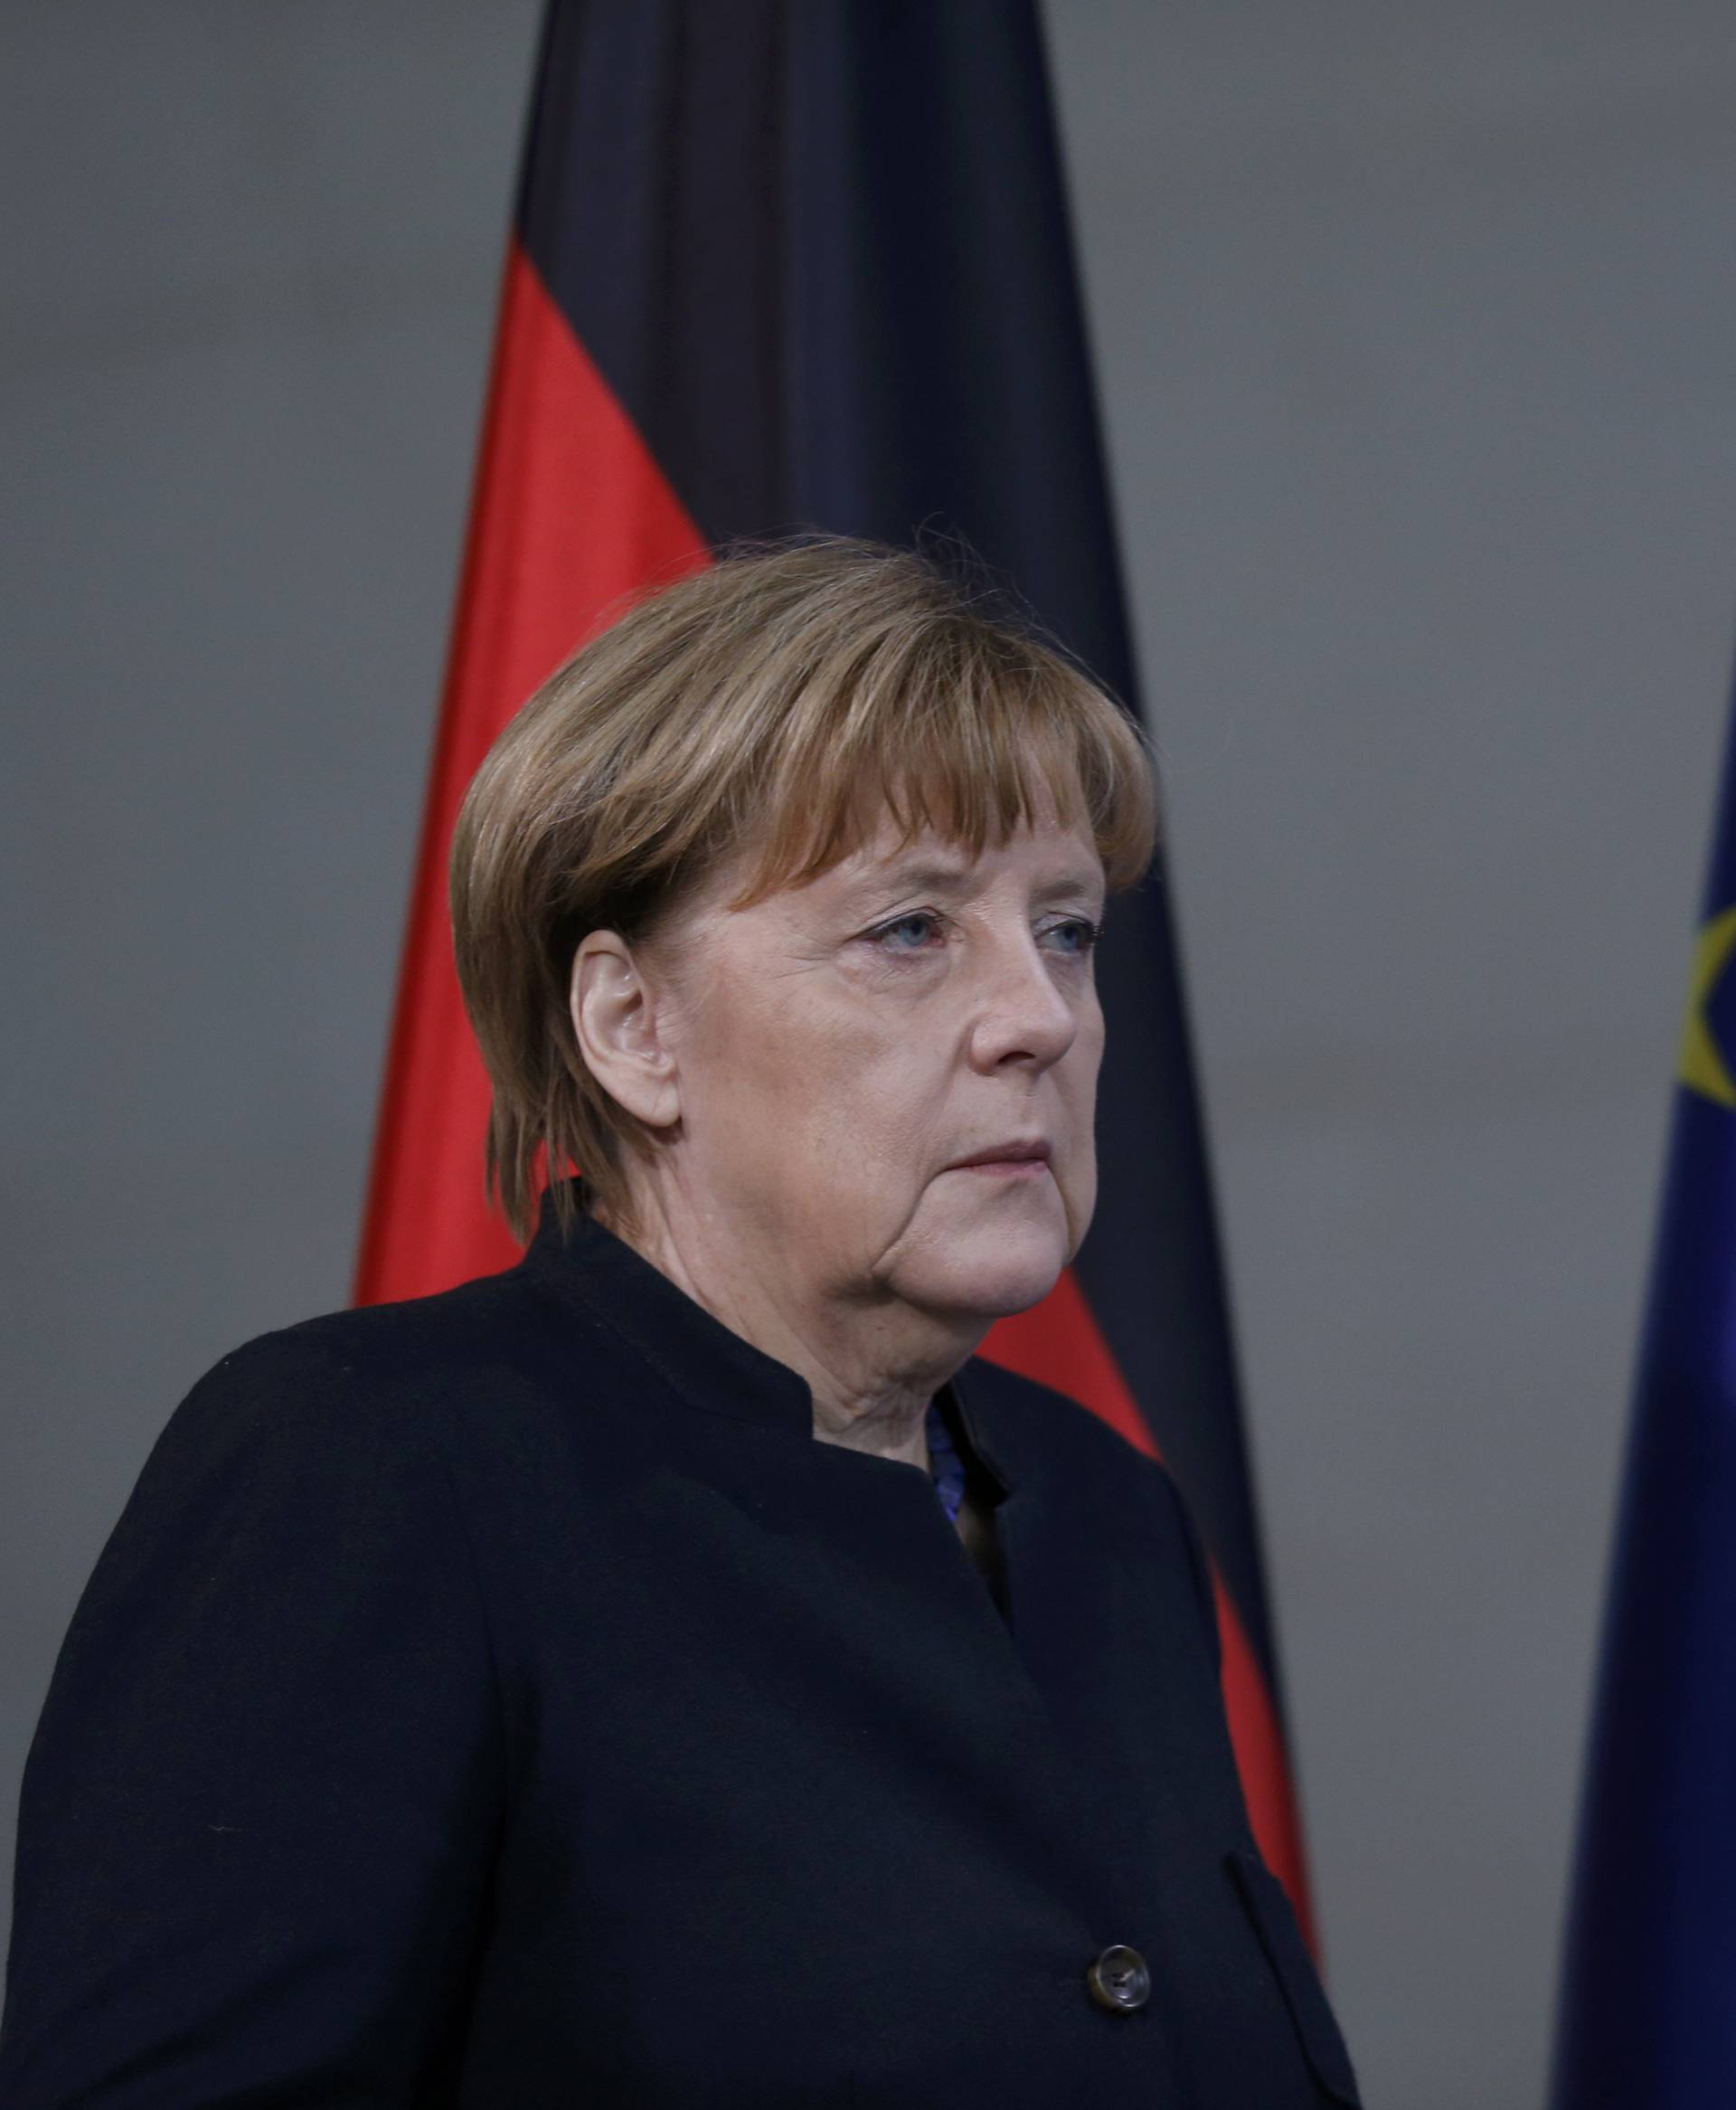 German Chancellor Angela Merkel arrives for a news conference in Berlin